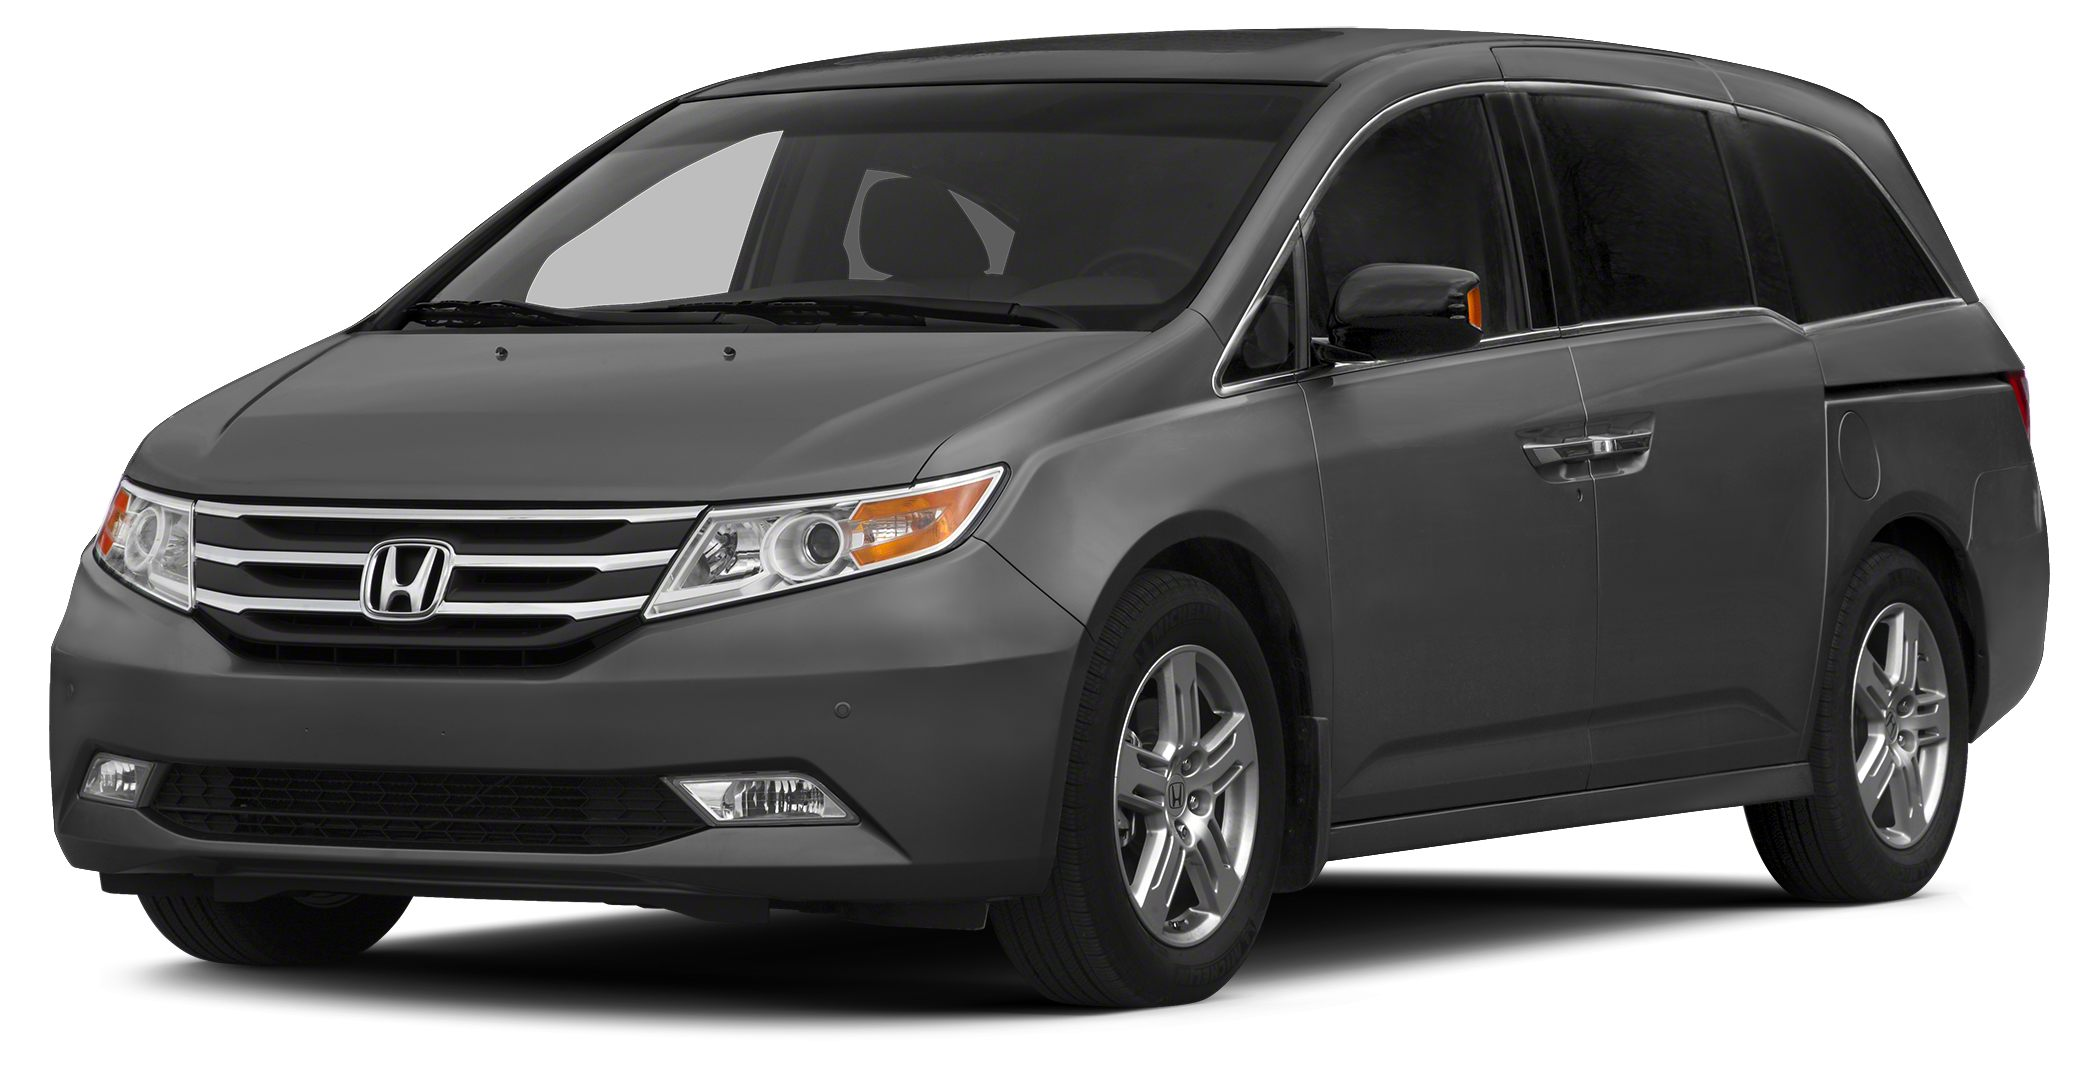 2013 Honda Odyssey  Win a deal on this 2013 Honda Odyssey while we have it Roomy but easy-moving